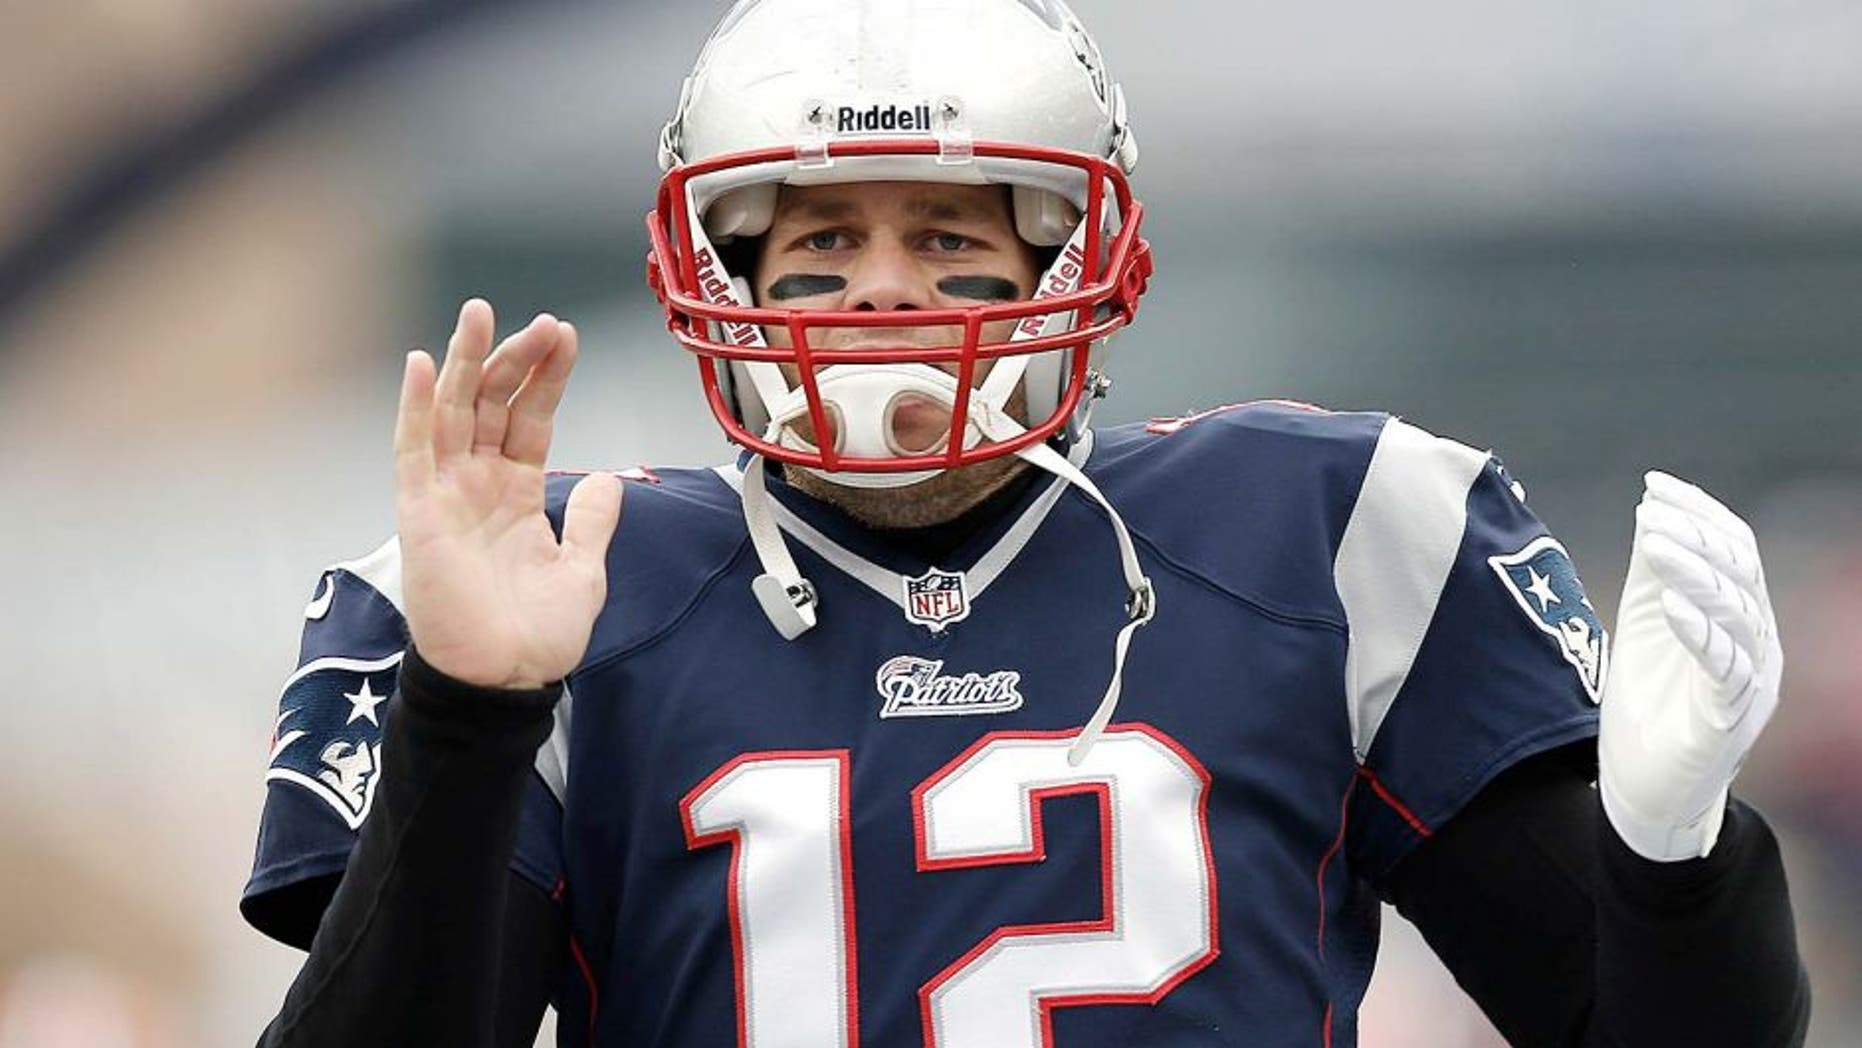 Dec 8, 2013; Foxborough, MA, USA; New England Patriots quarterback Tom Brady (12) takes the field before the game against the Cleveland Browns at Gillette Stadium. Mandatory Credit: Winslow Townson-USA TODAY Sports